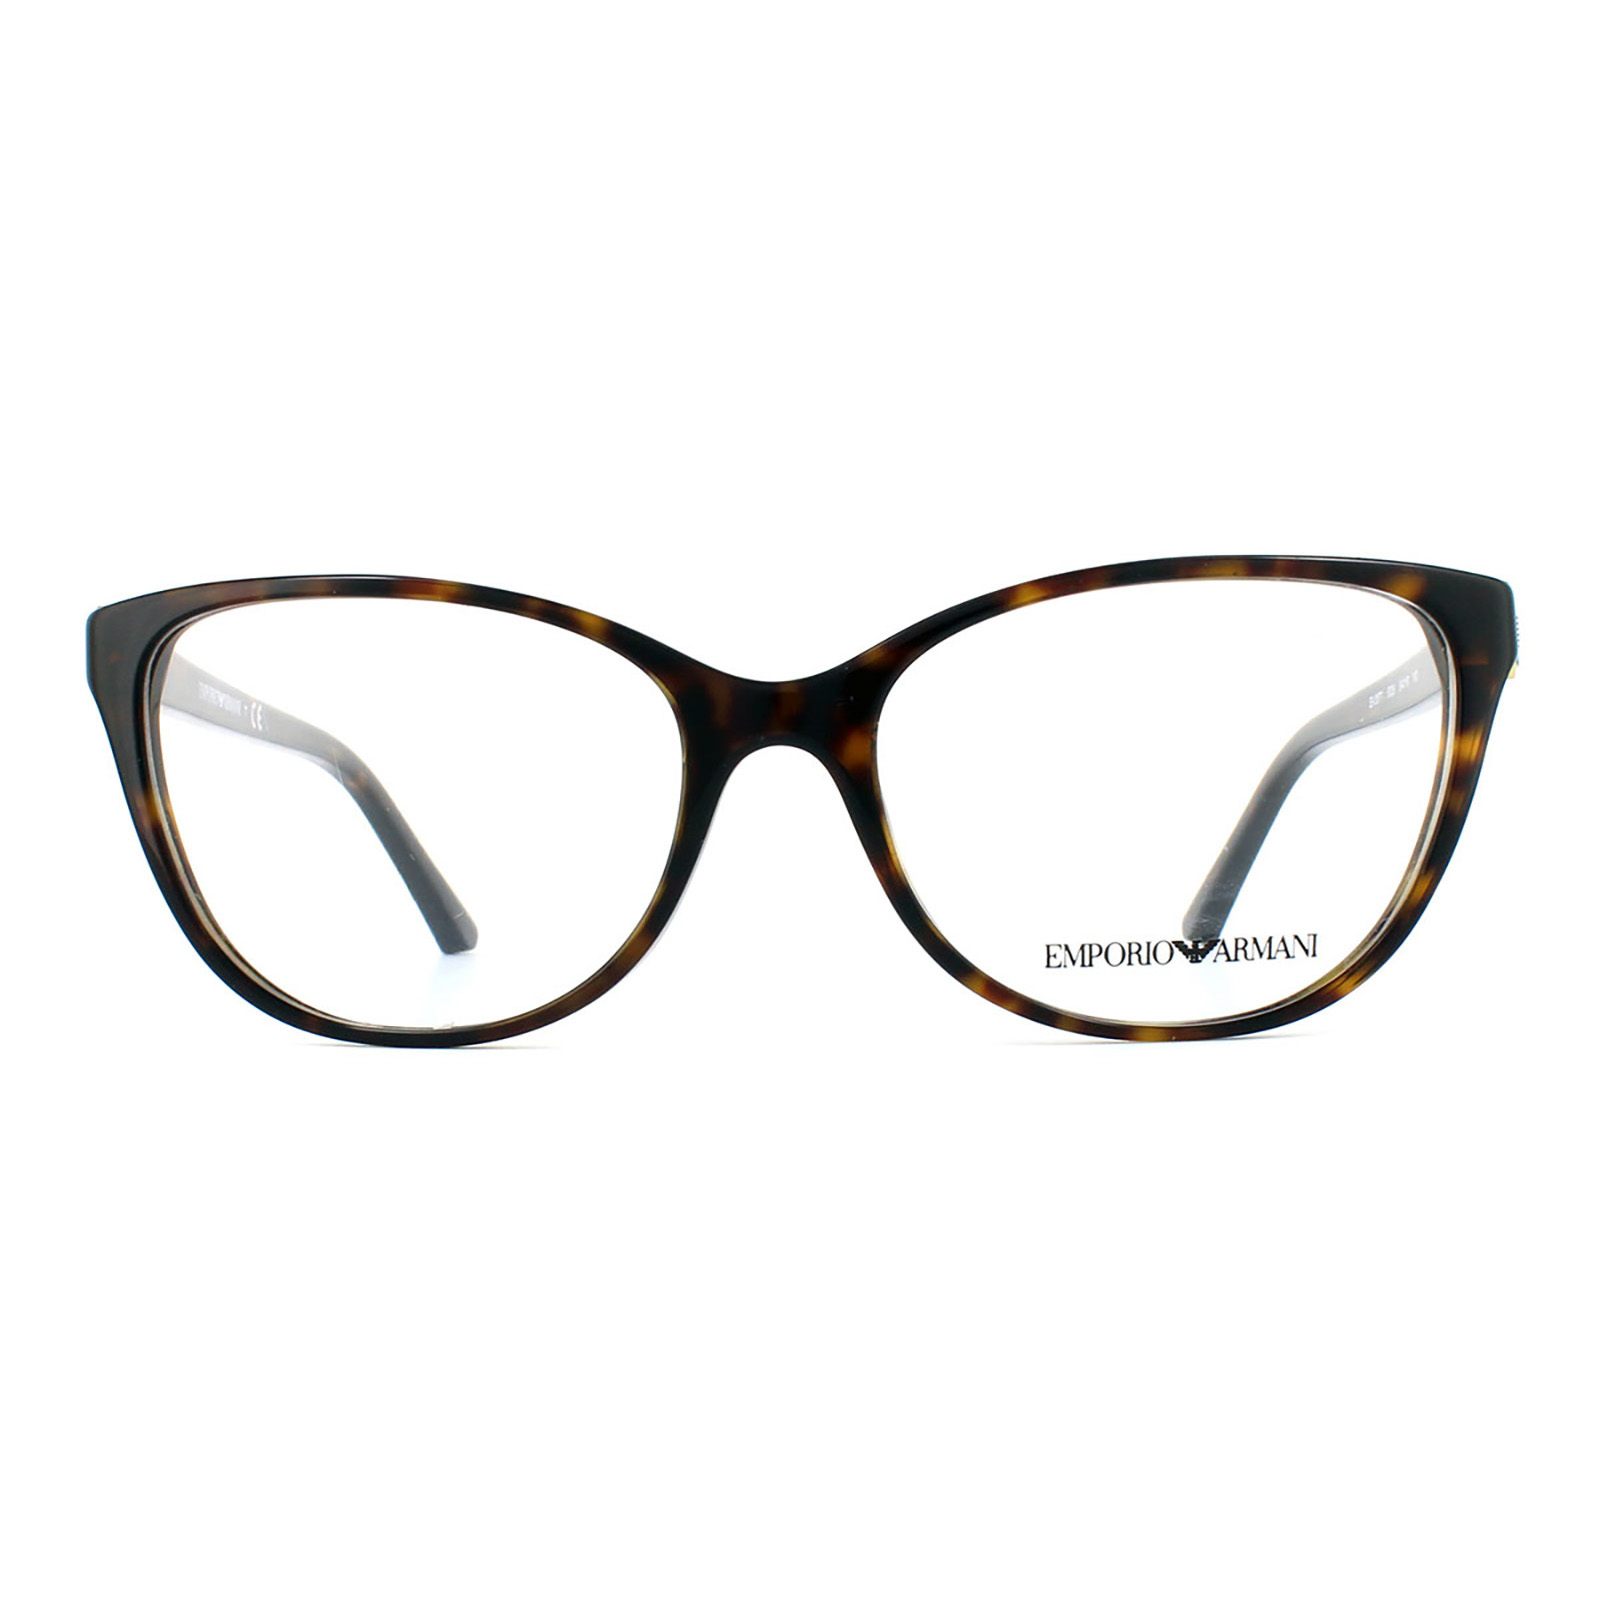 Emporio Armani Glasses Frames 3077 5026 Havana Womens 52mm | eBay